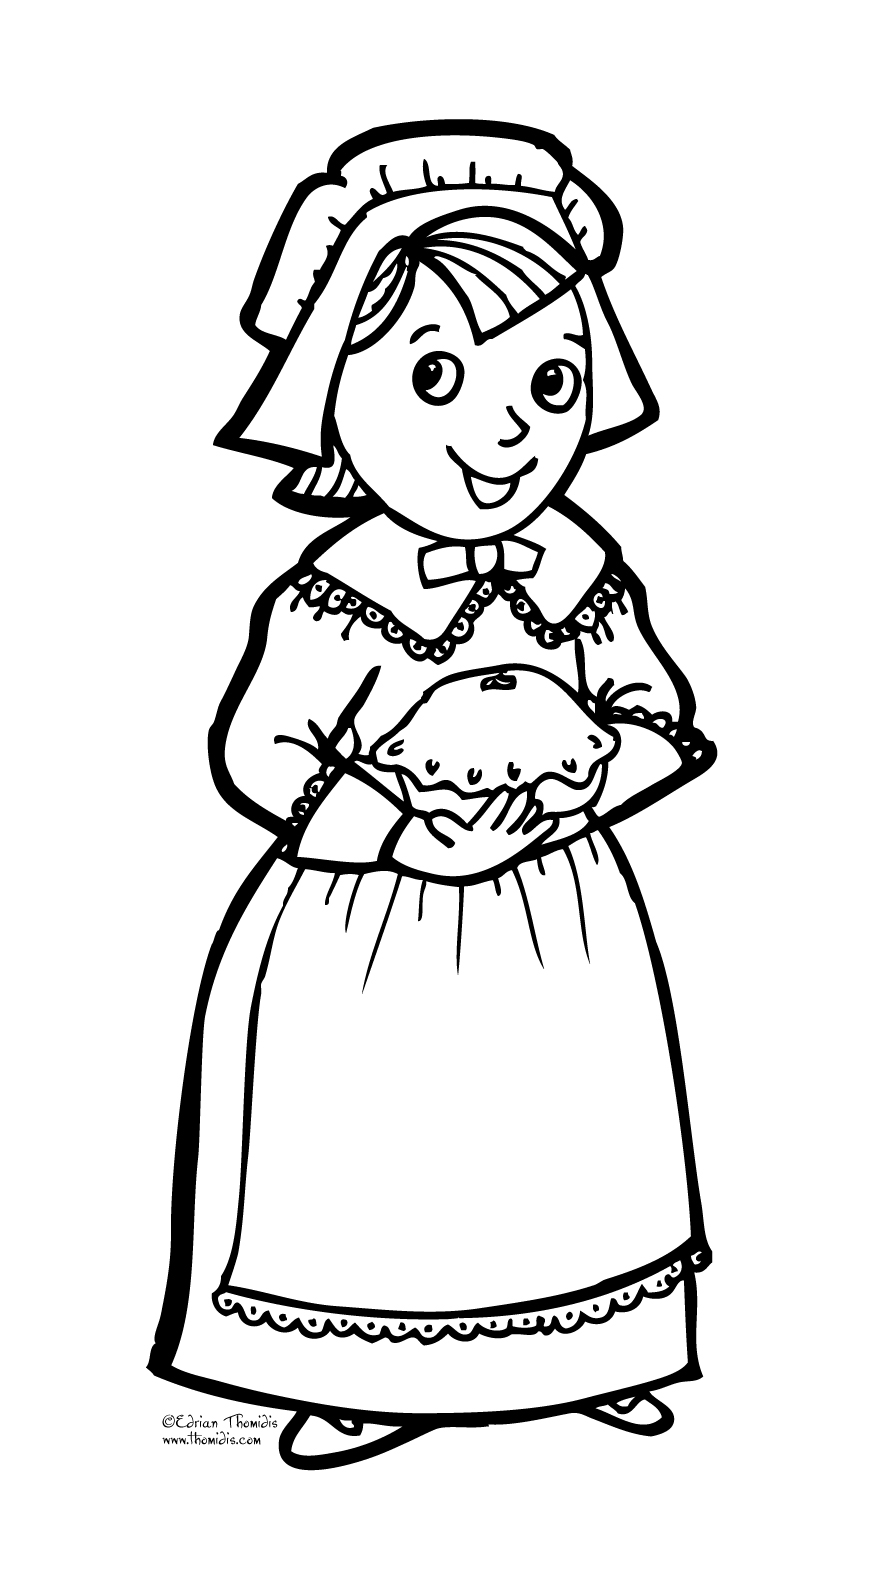 pilgrim boy and girl coloring pages thanksgiving coloring pages printables boy coloring pages pilgrim and girl